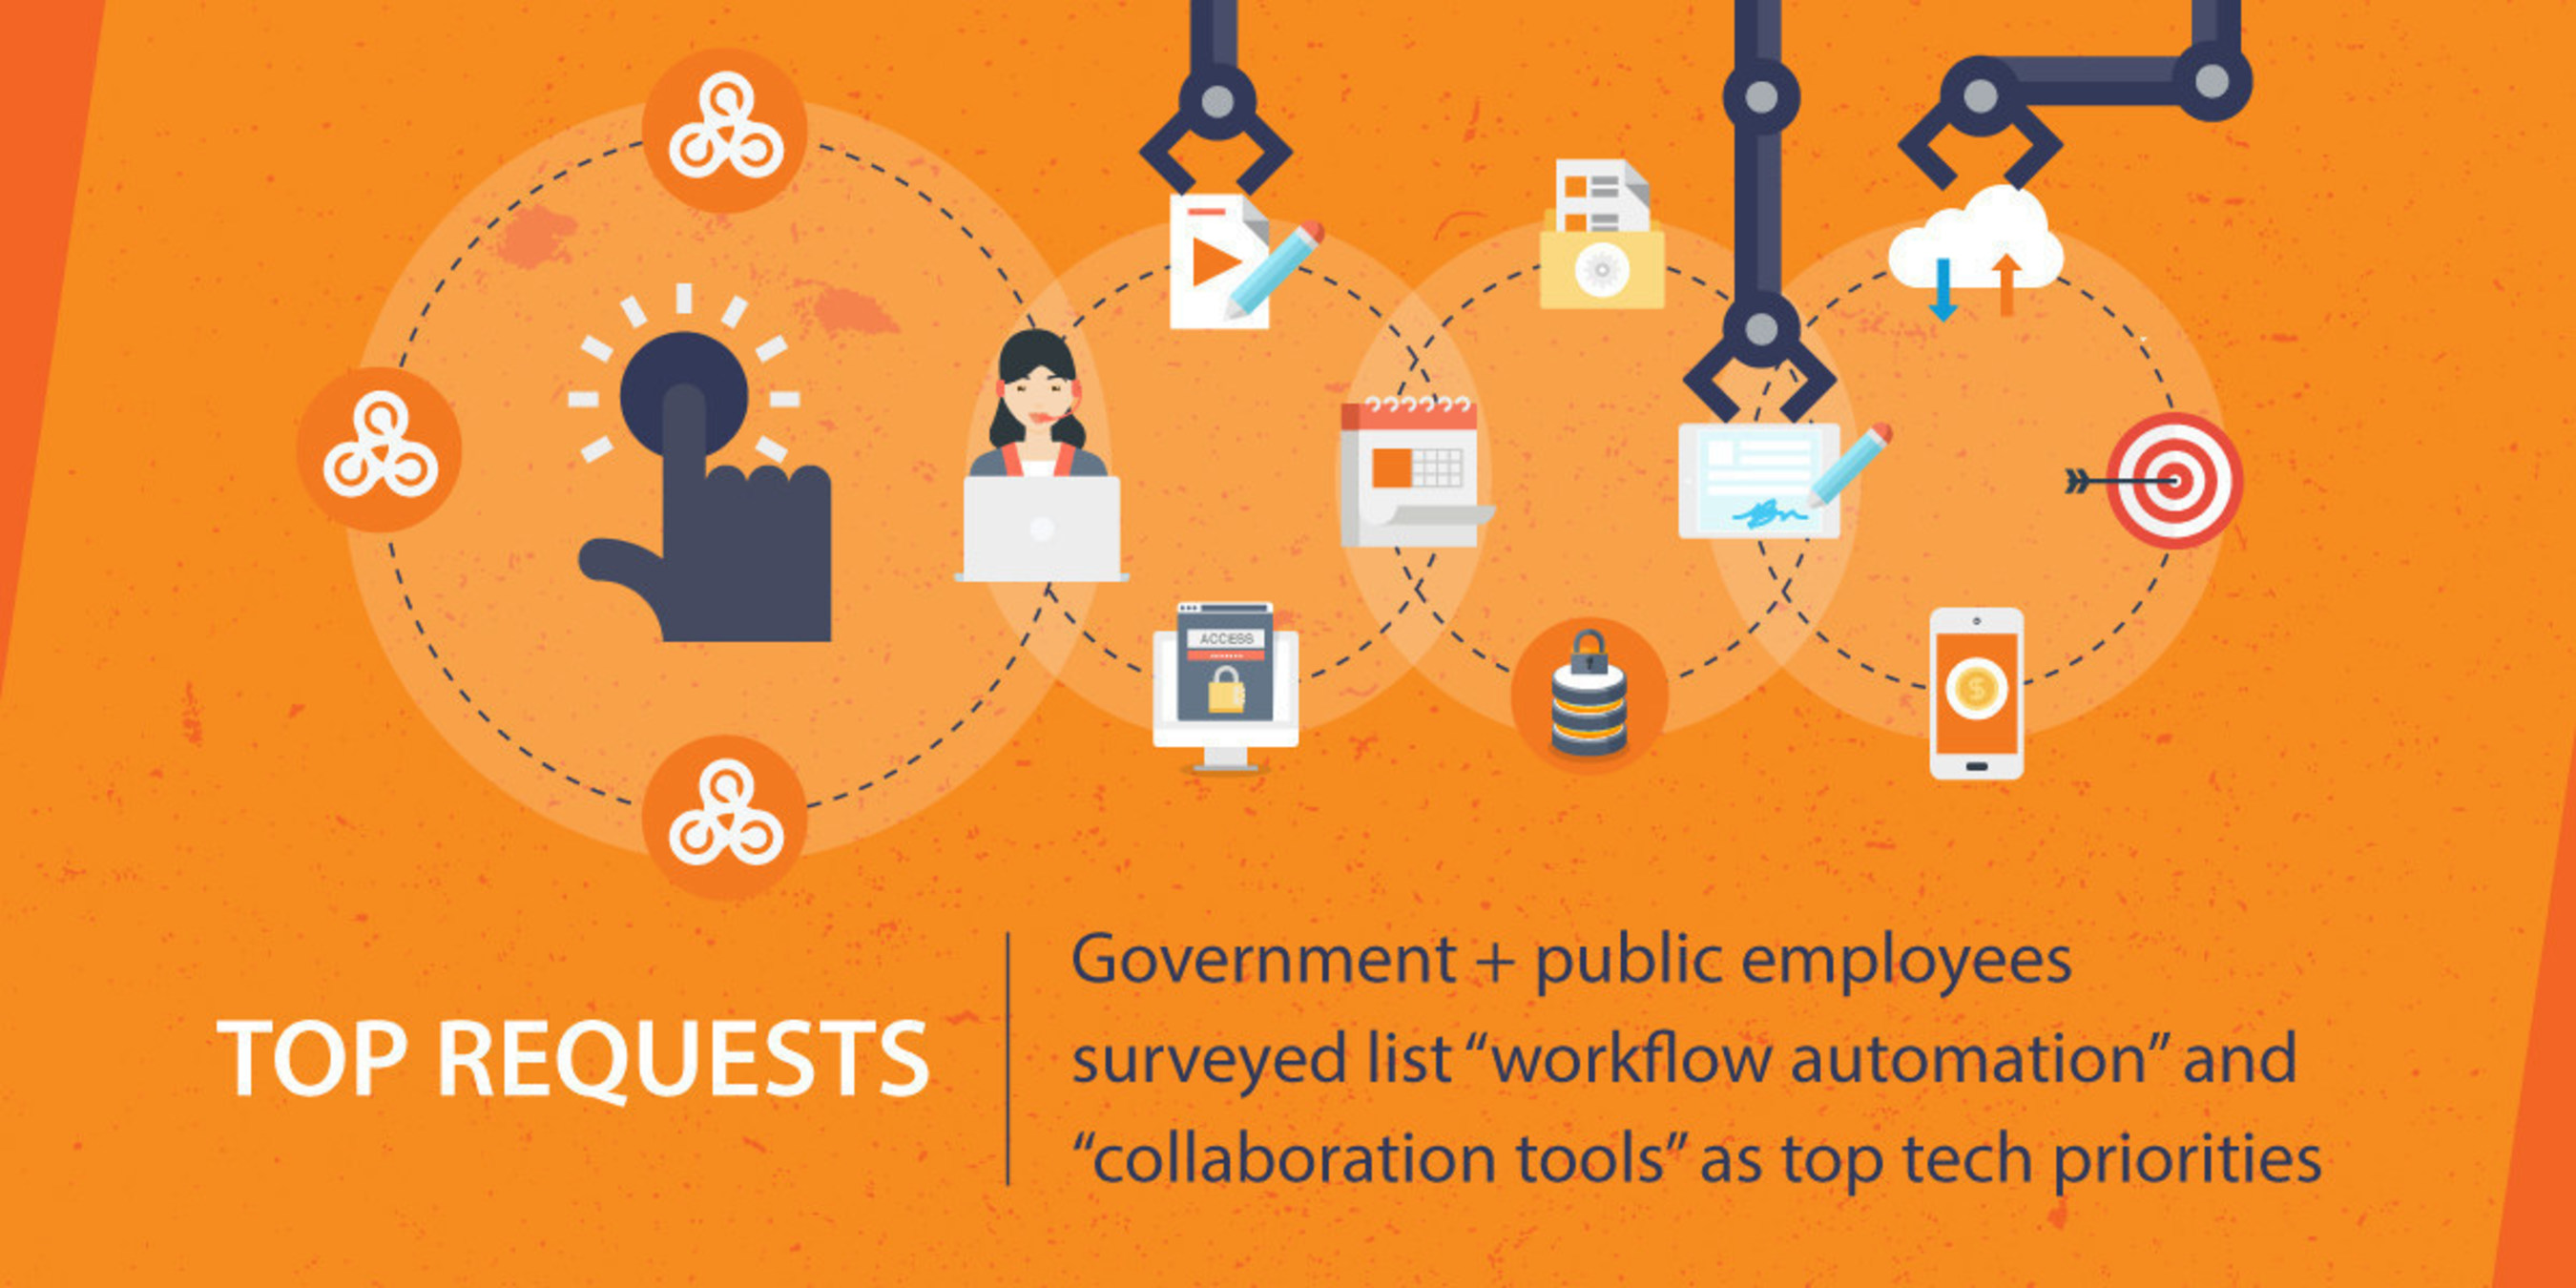 The new Nintex State of Productivity Survey reveals that employees in both public and private sectors tend to share a common view of technology and work. Learn more at Nintex.com.